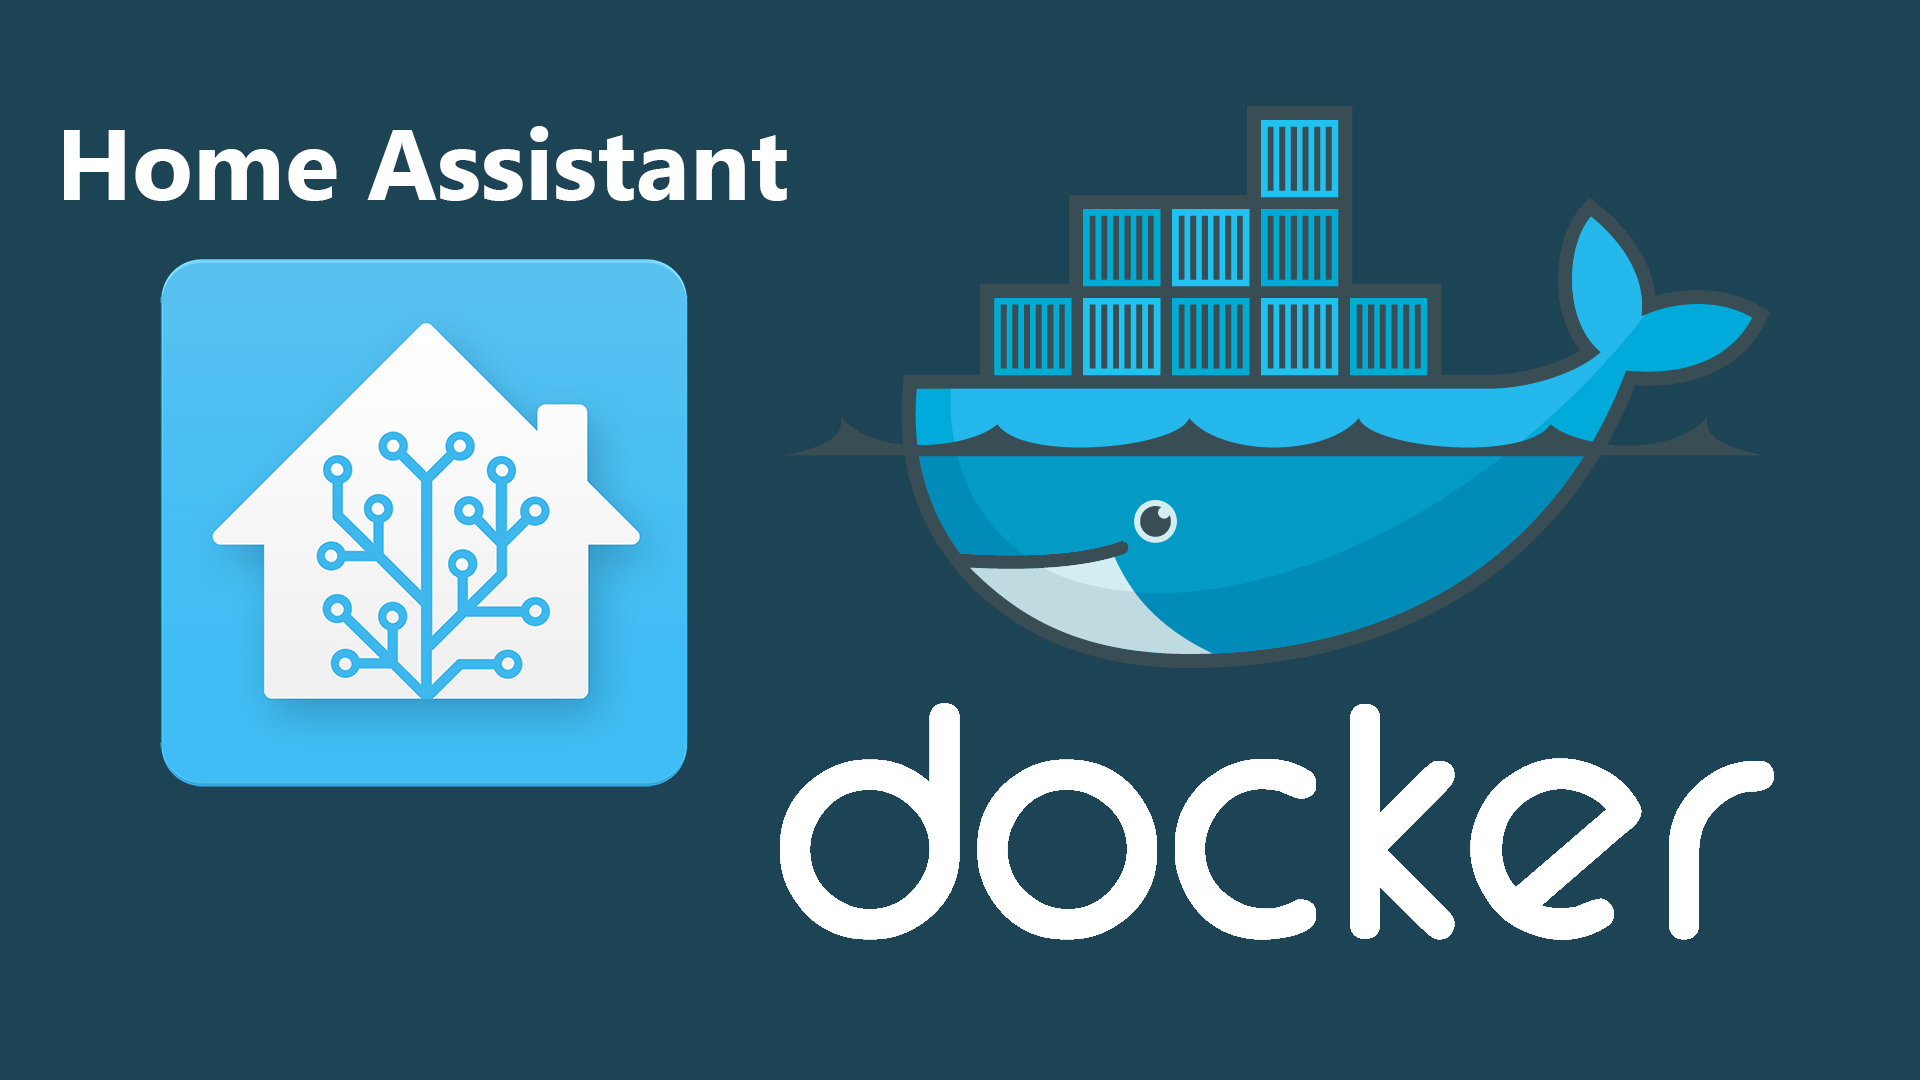 Try These Home Assistant Docker Compose {Mahindra Racing}